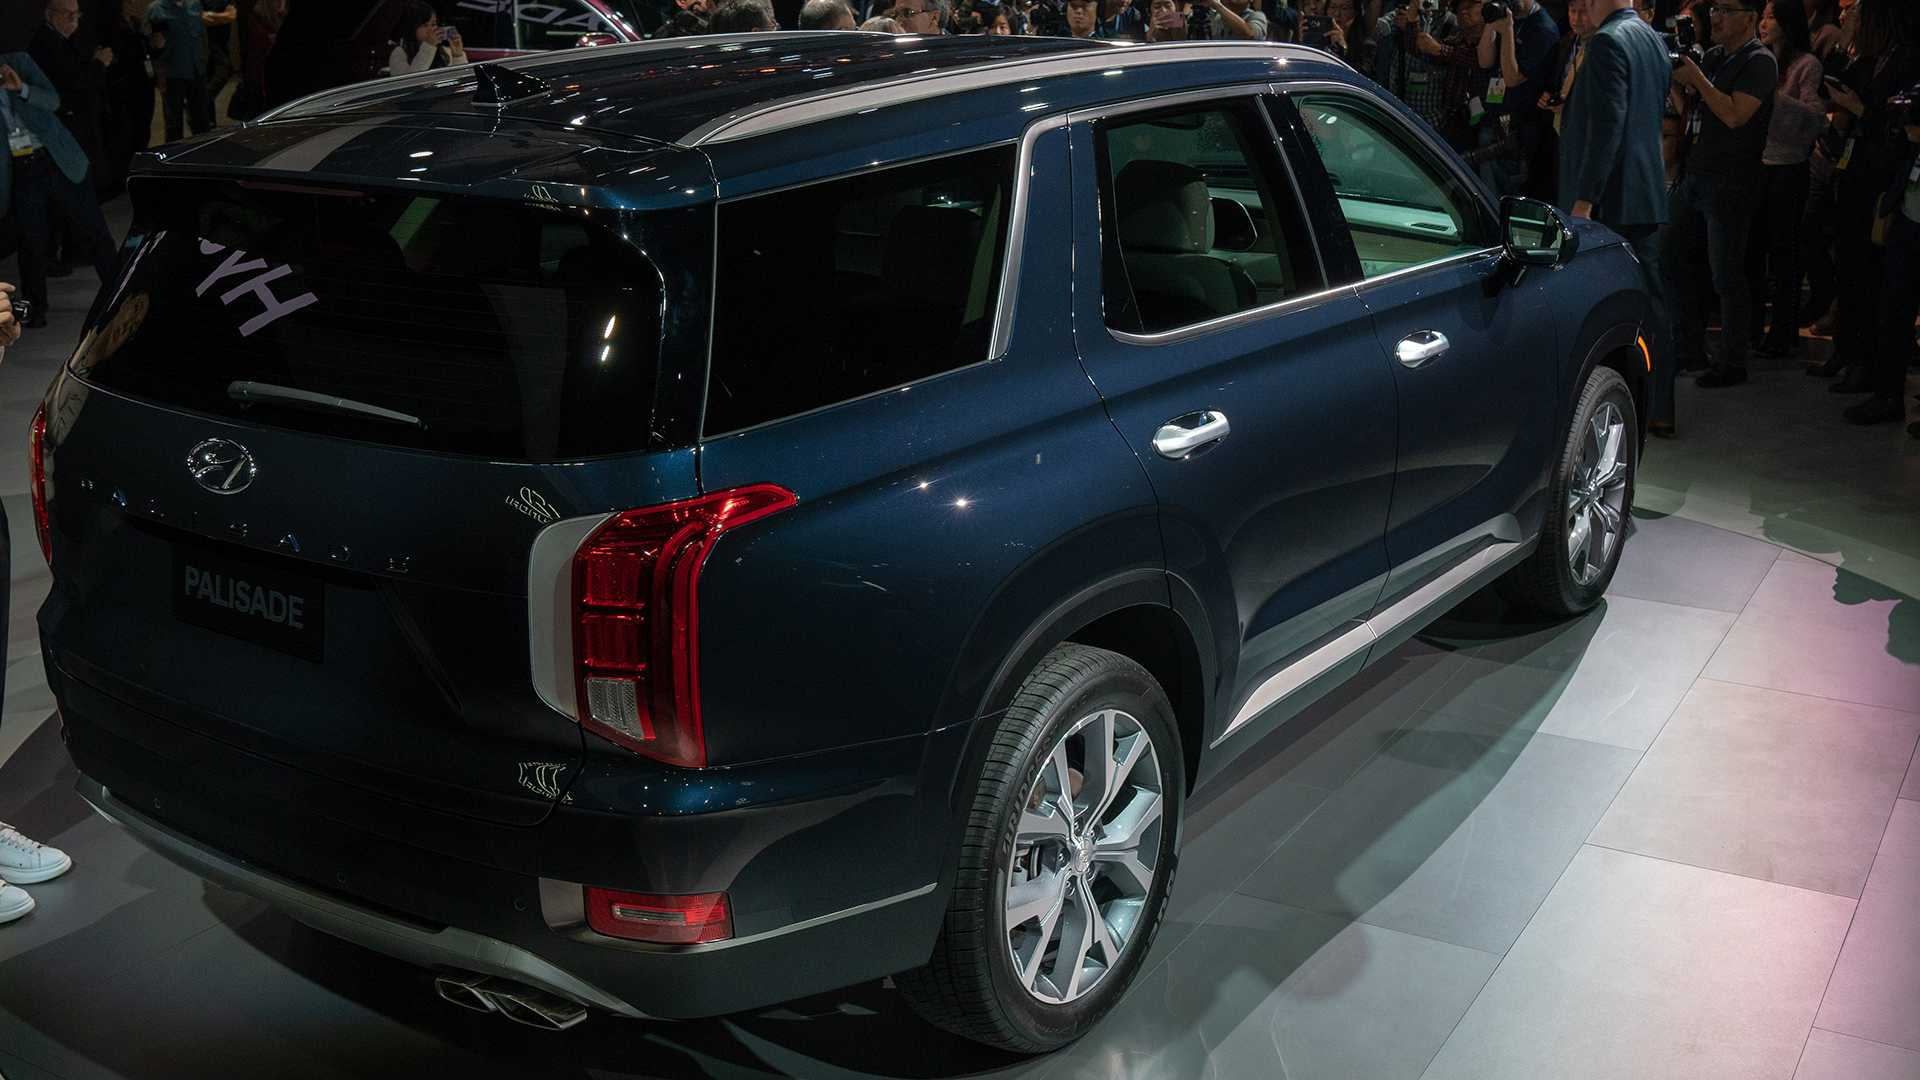 2020 Hyundai Palisade Debuts With Bold Design And 8 Seats Update